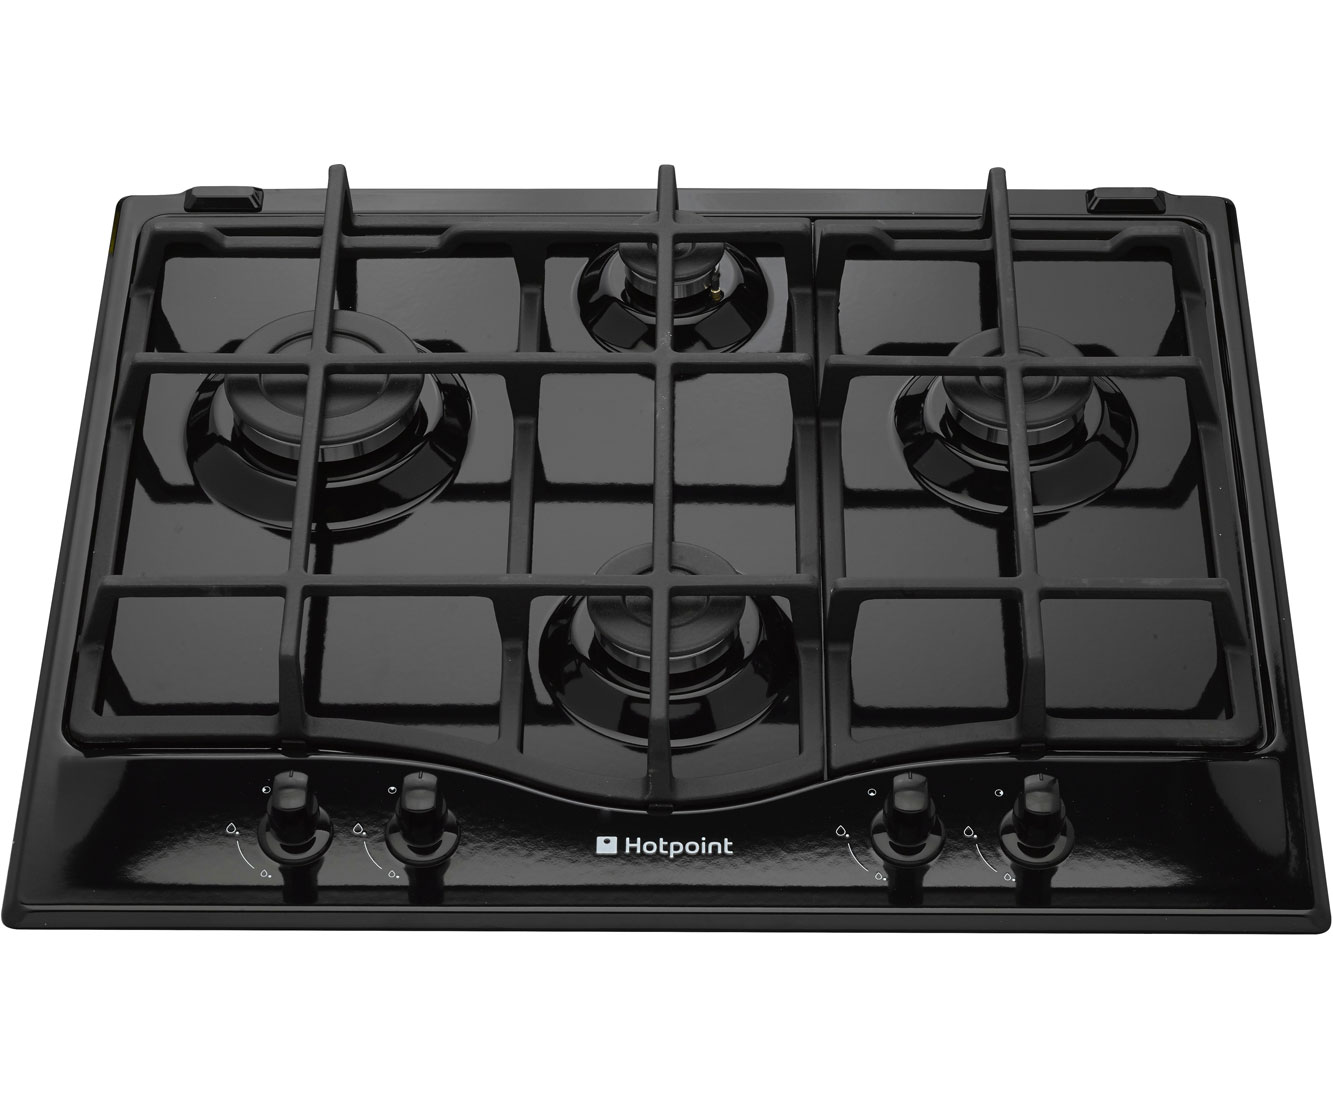 Hotpoint Ultima GC641IK Integrated Gas Hob in Black